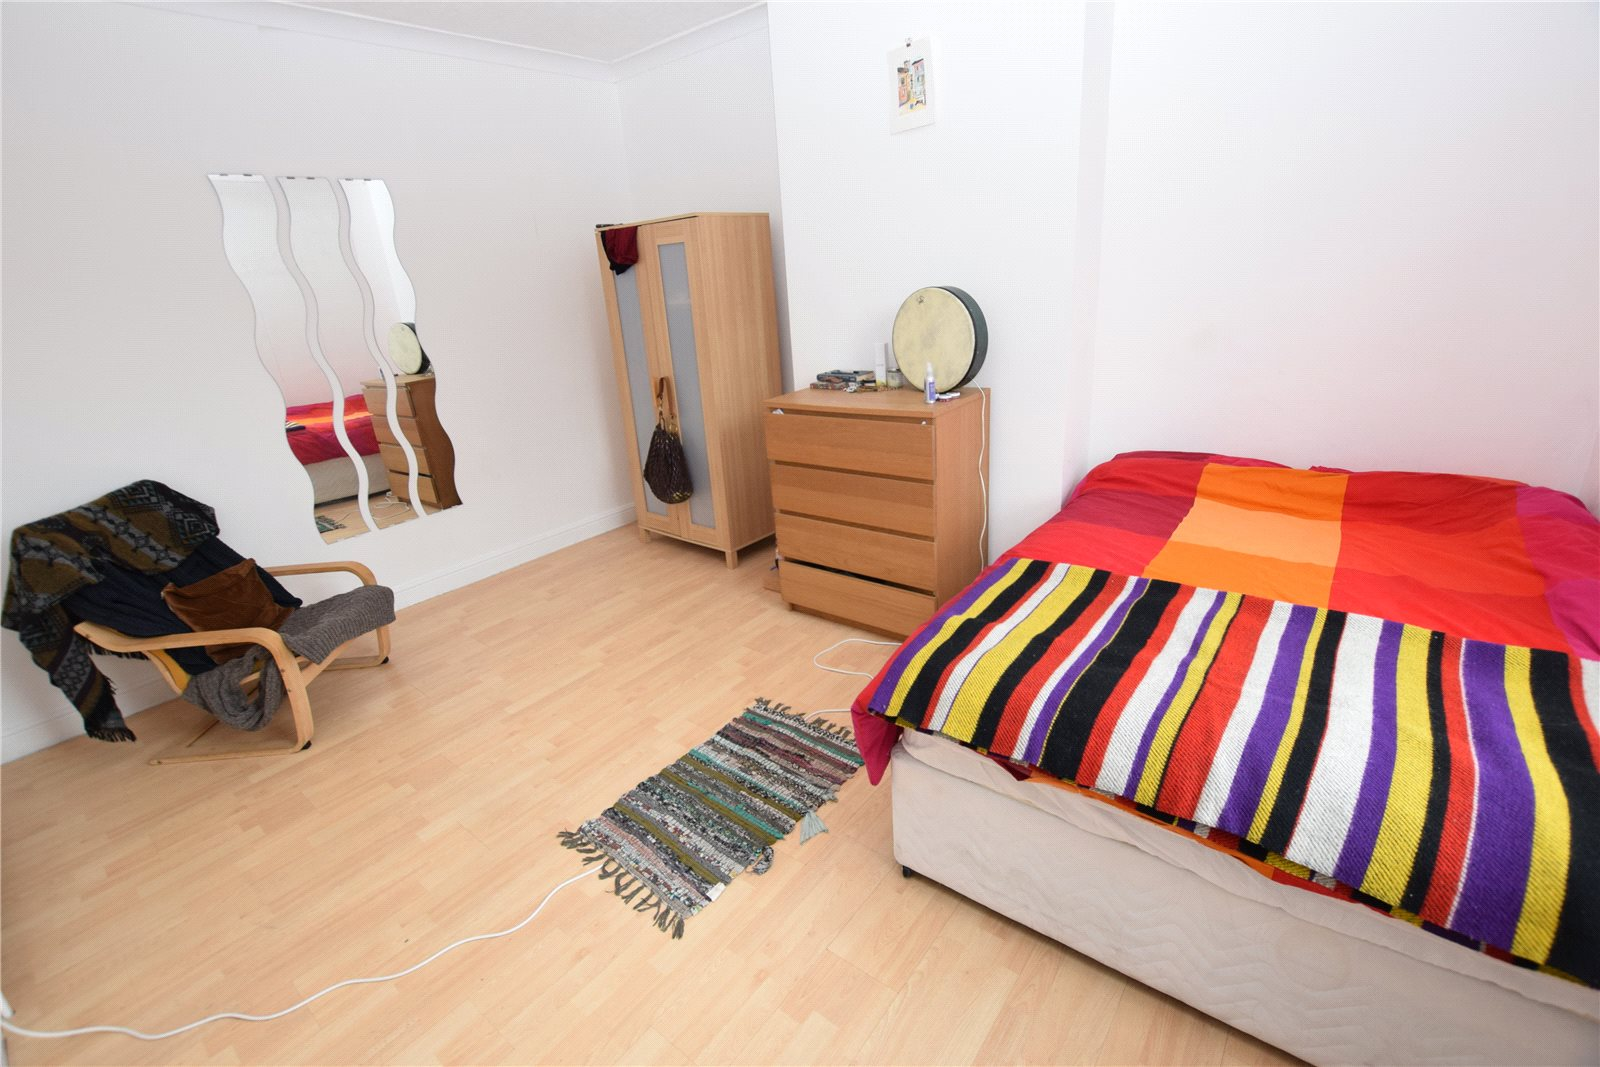 Property for sale in Wortley, interior spacious double bedroom